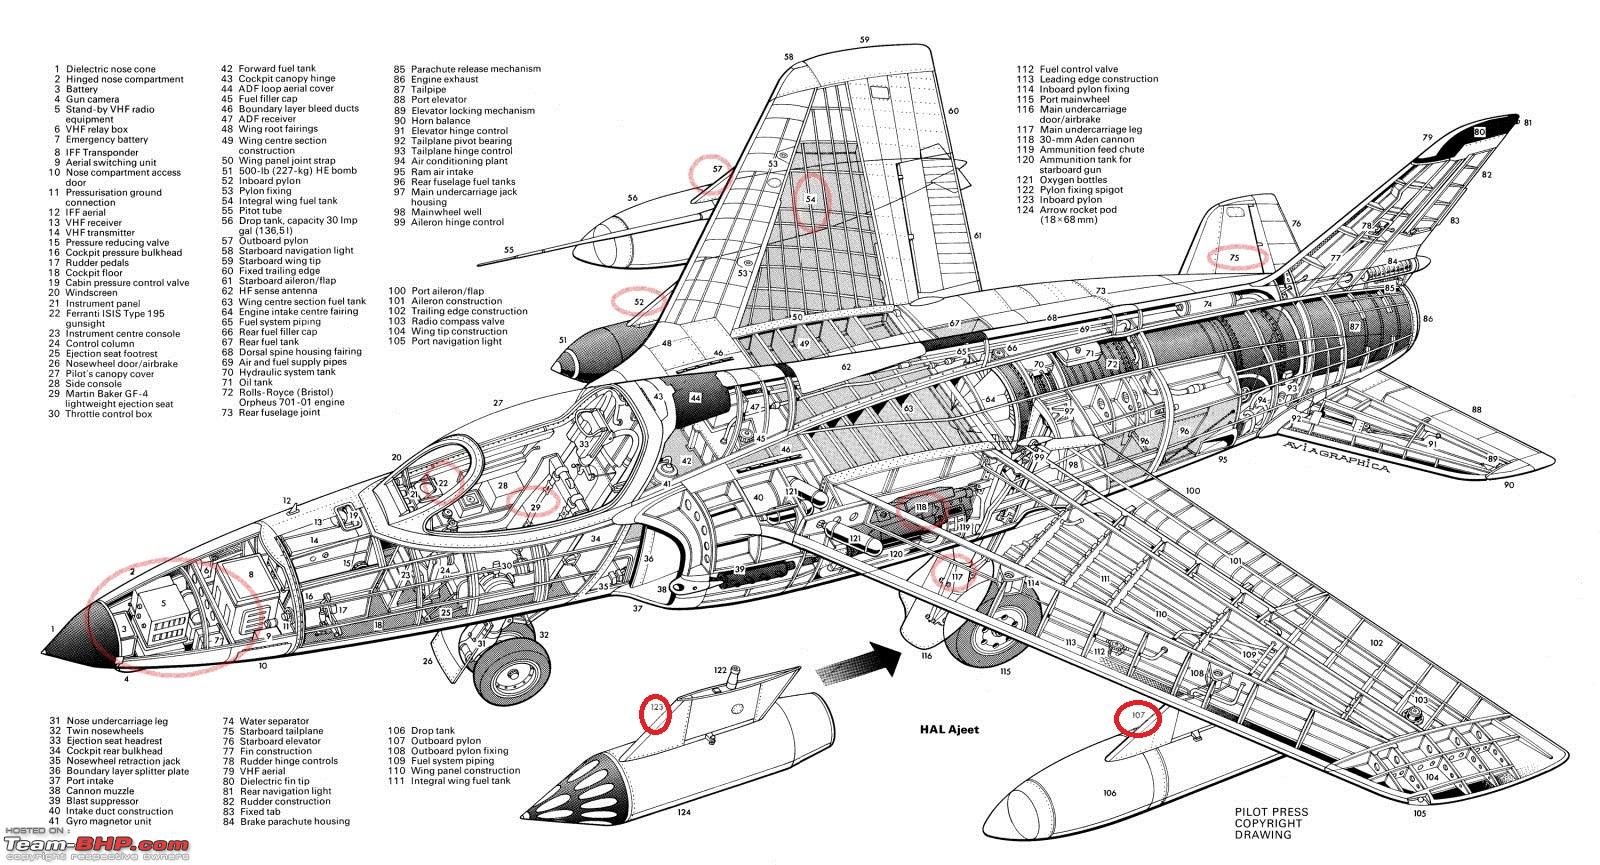 Military Aircrafts Designs And Concepts